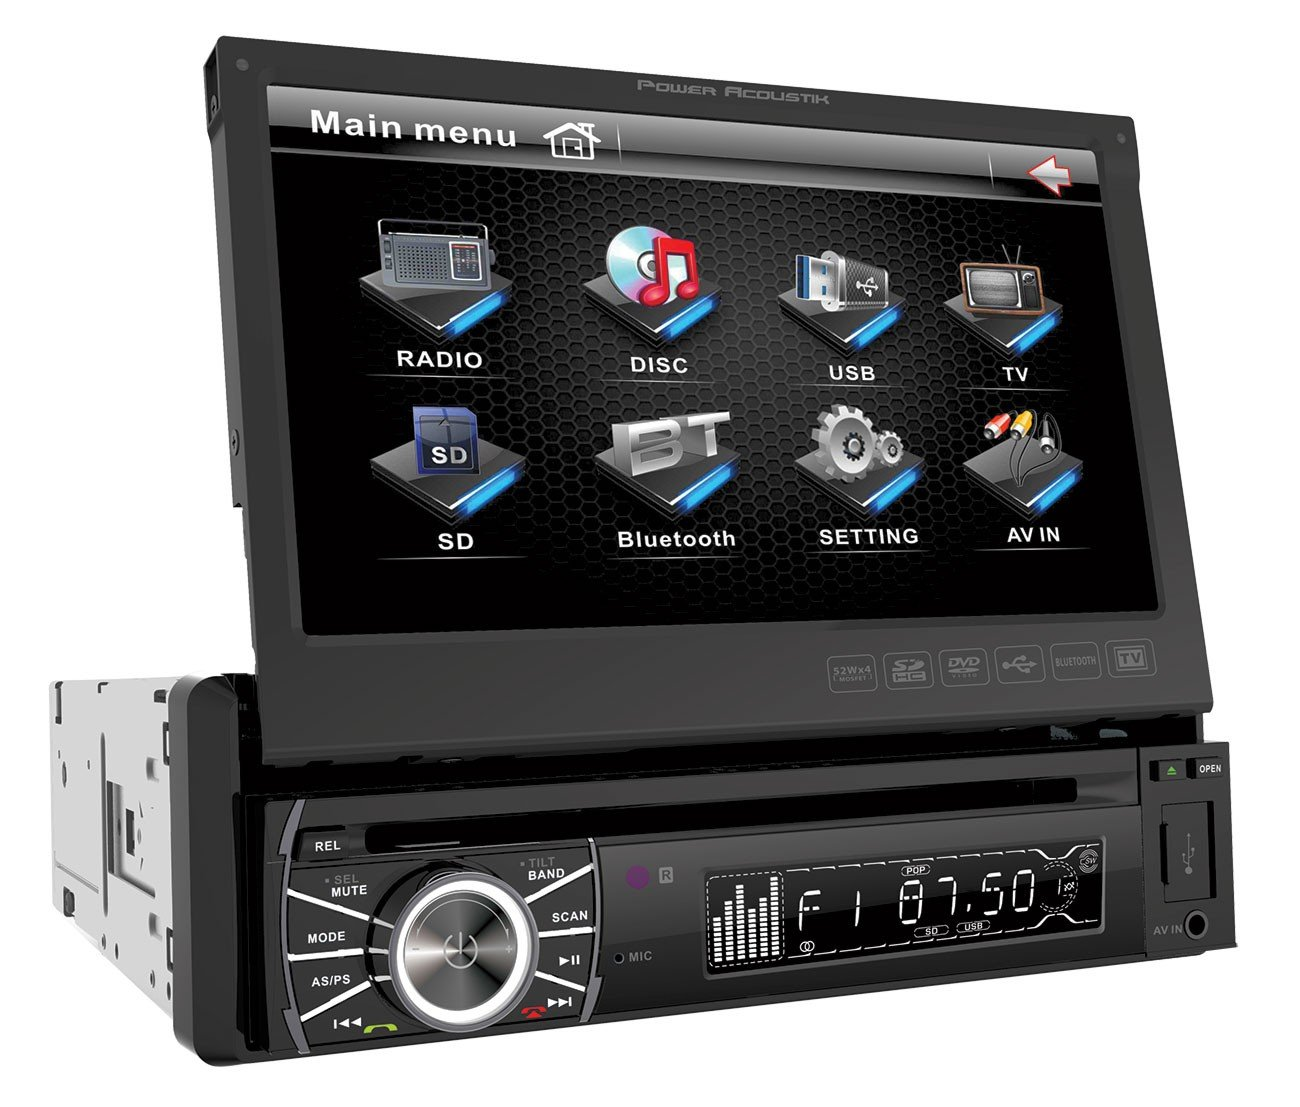 Power Acoustik PTID-8920B In-Dash DVD AM/FM Receiver with 7-Inch Flip-Out Touchscreen Monitor and USB/SD Input by Power Acoustik